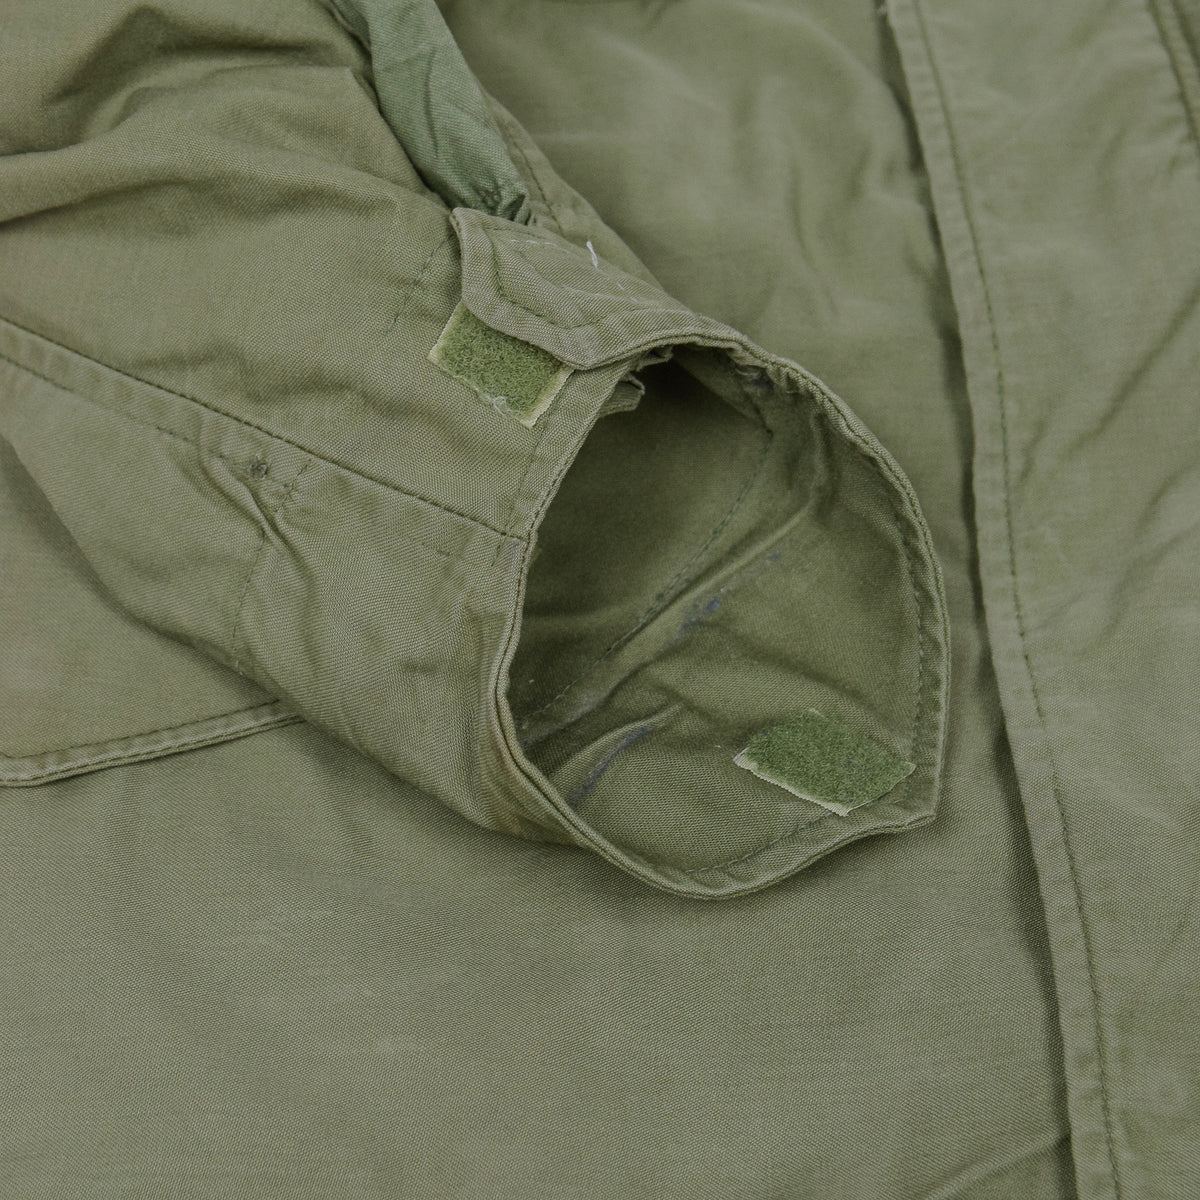 Vintage 60s Vietnam M-65 Field Cotton Sateen 0G-107 Green US Army Coat S Short cuff